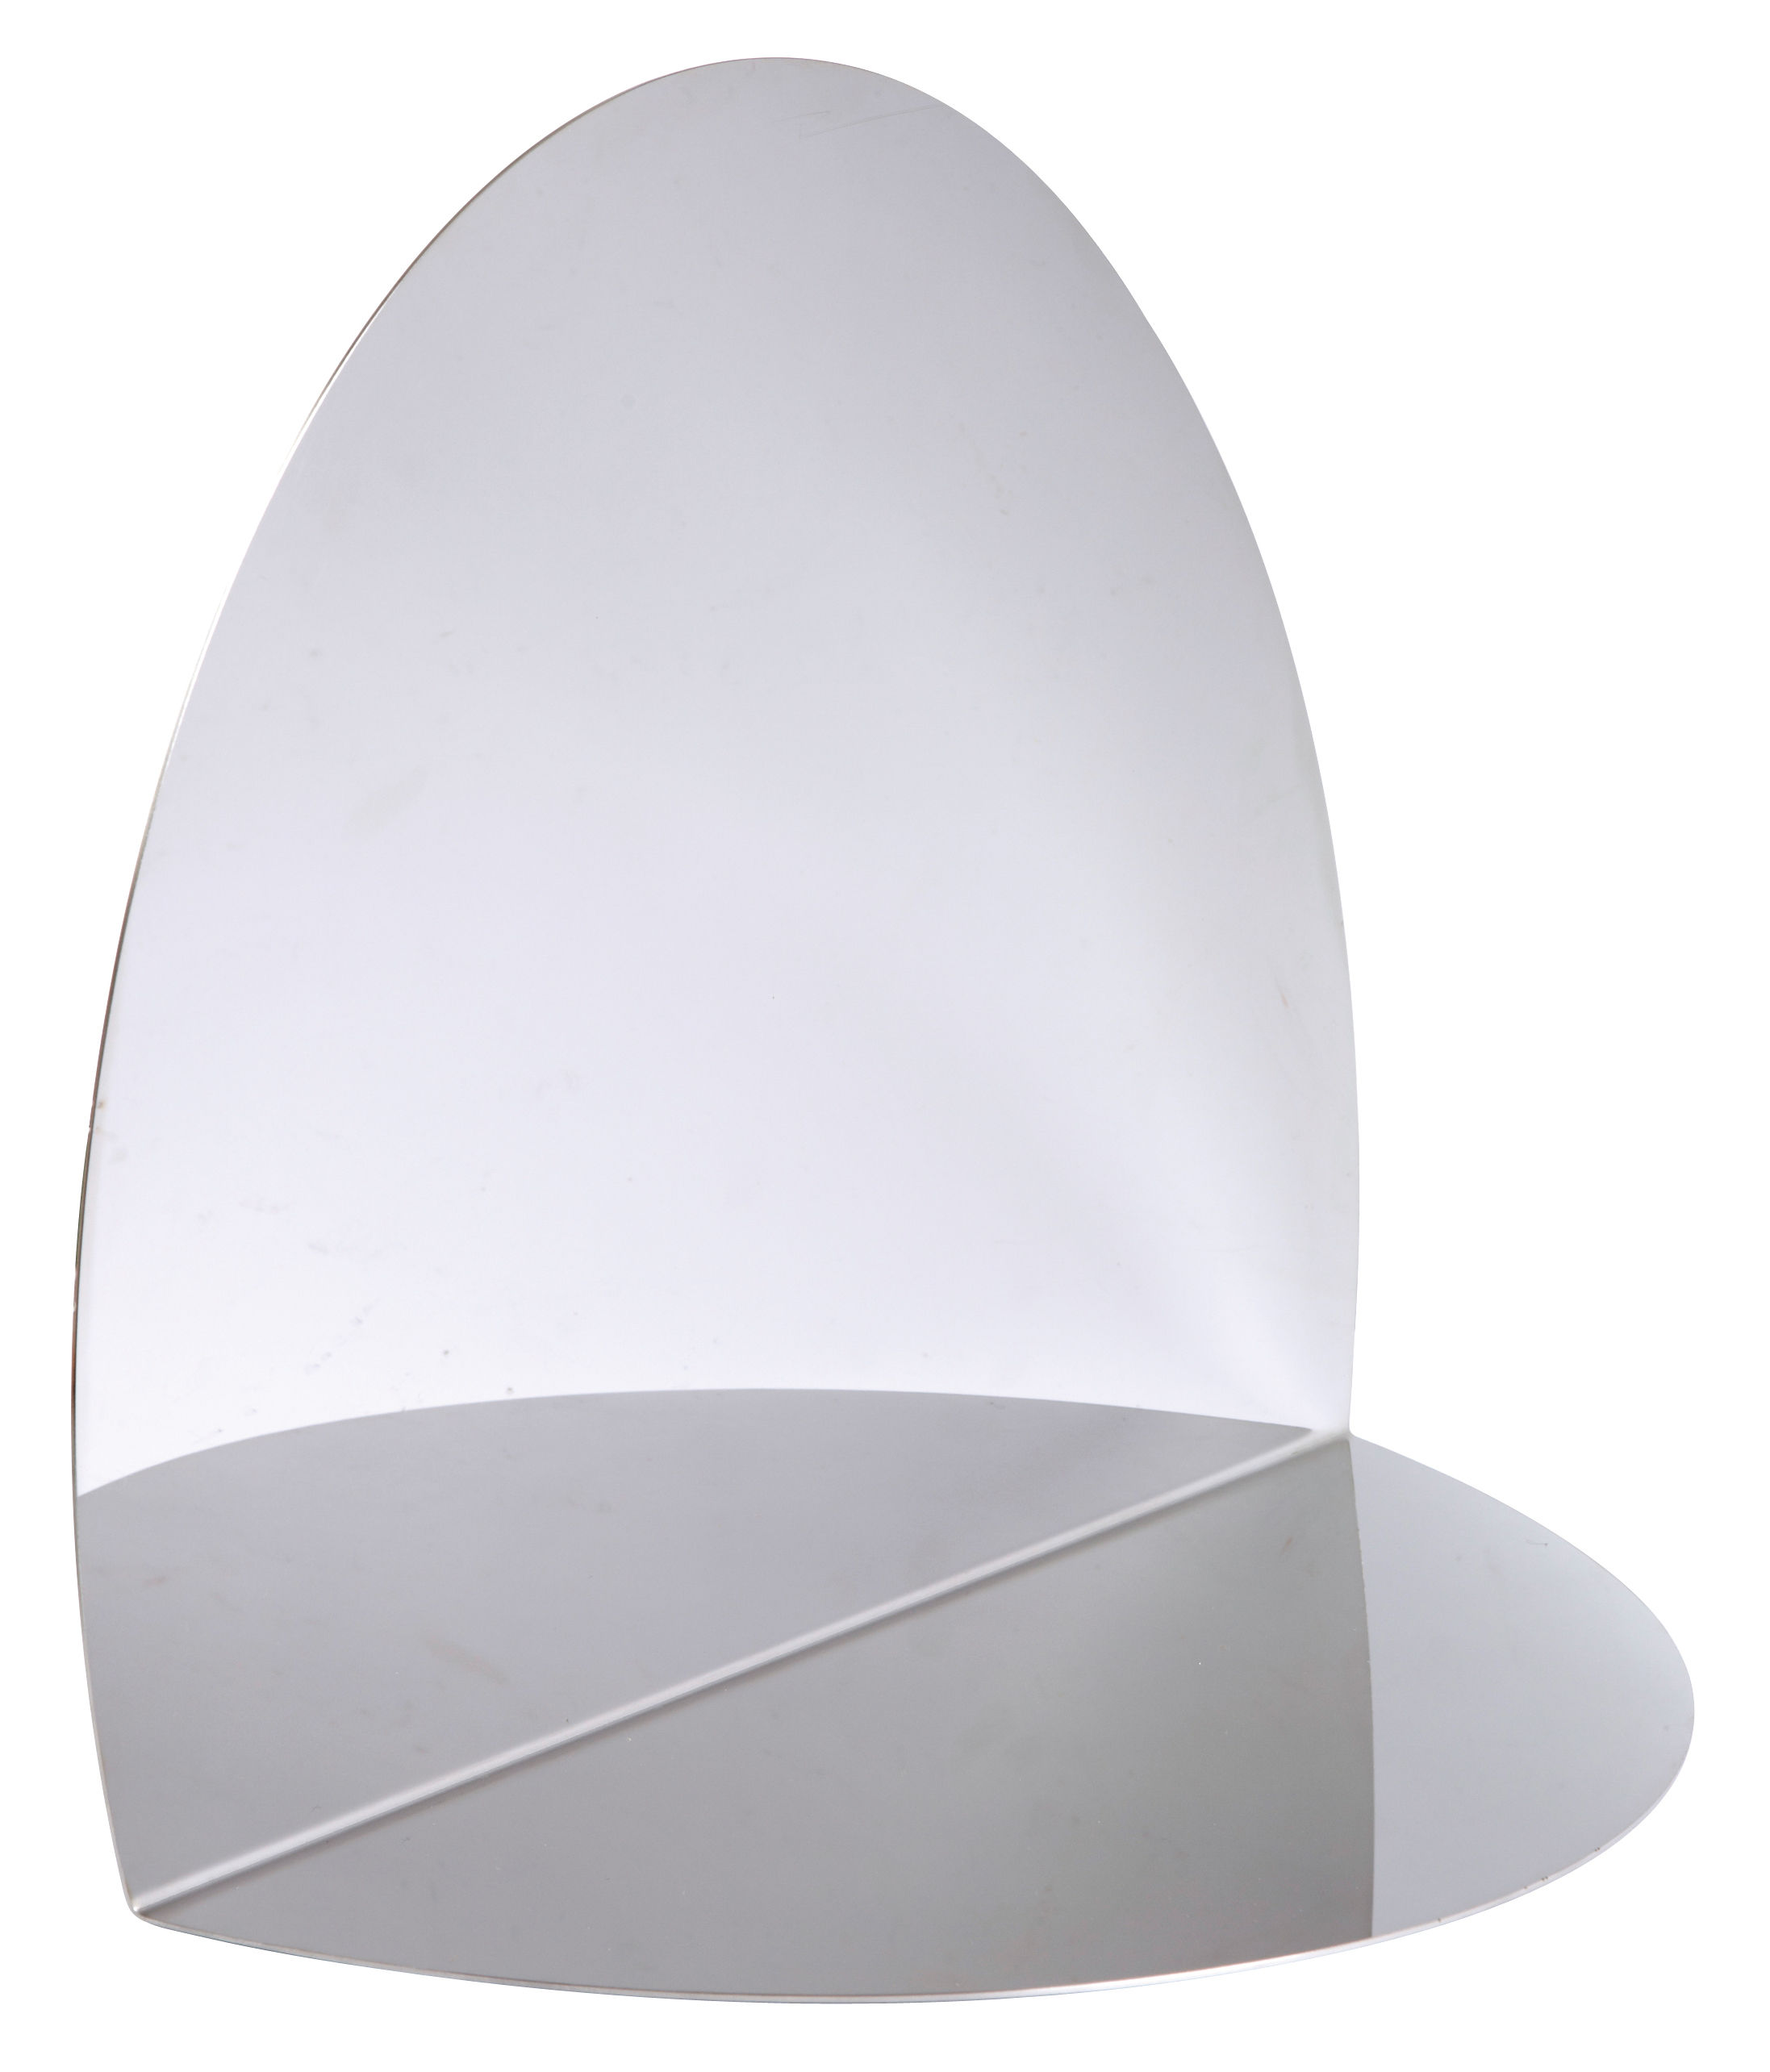 Decoration - Mirrors - Anamorphose Mirror by L'atelier d'exercices - Mirror - Stainless steel